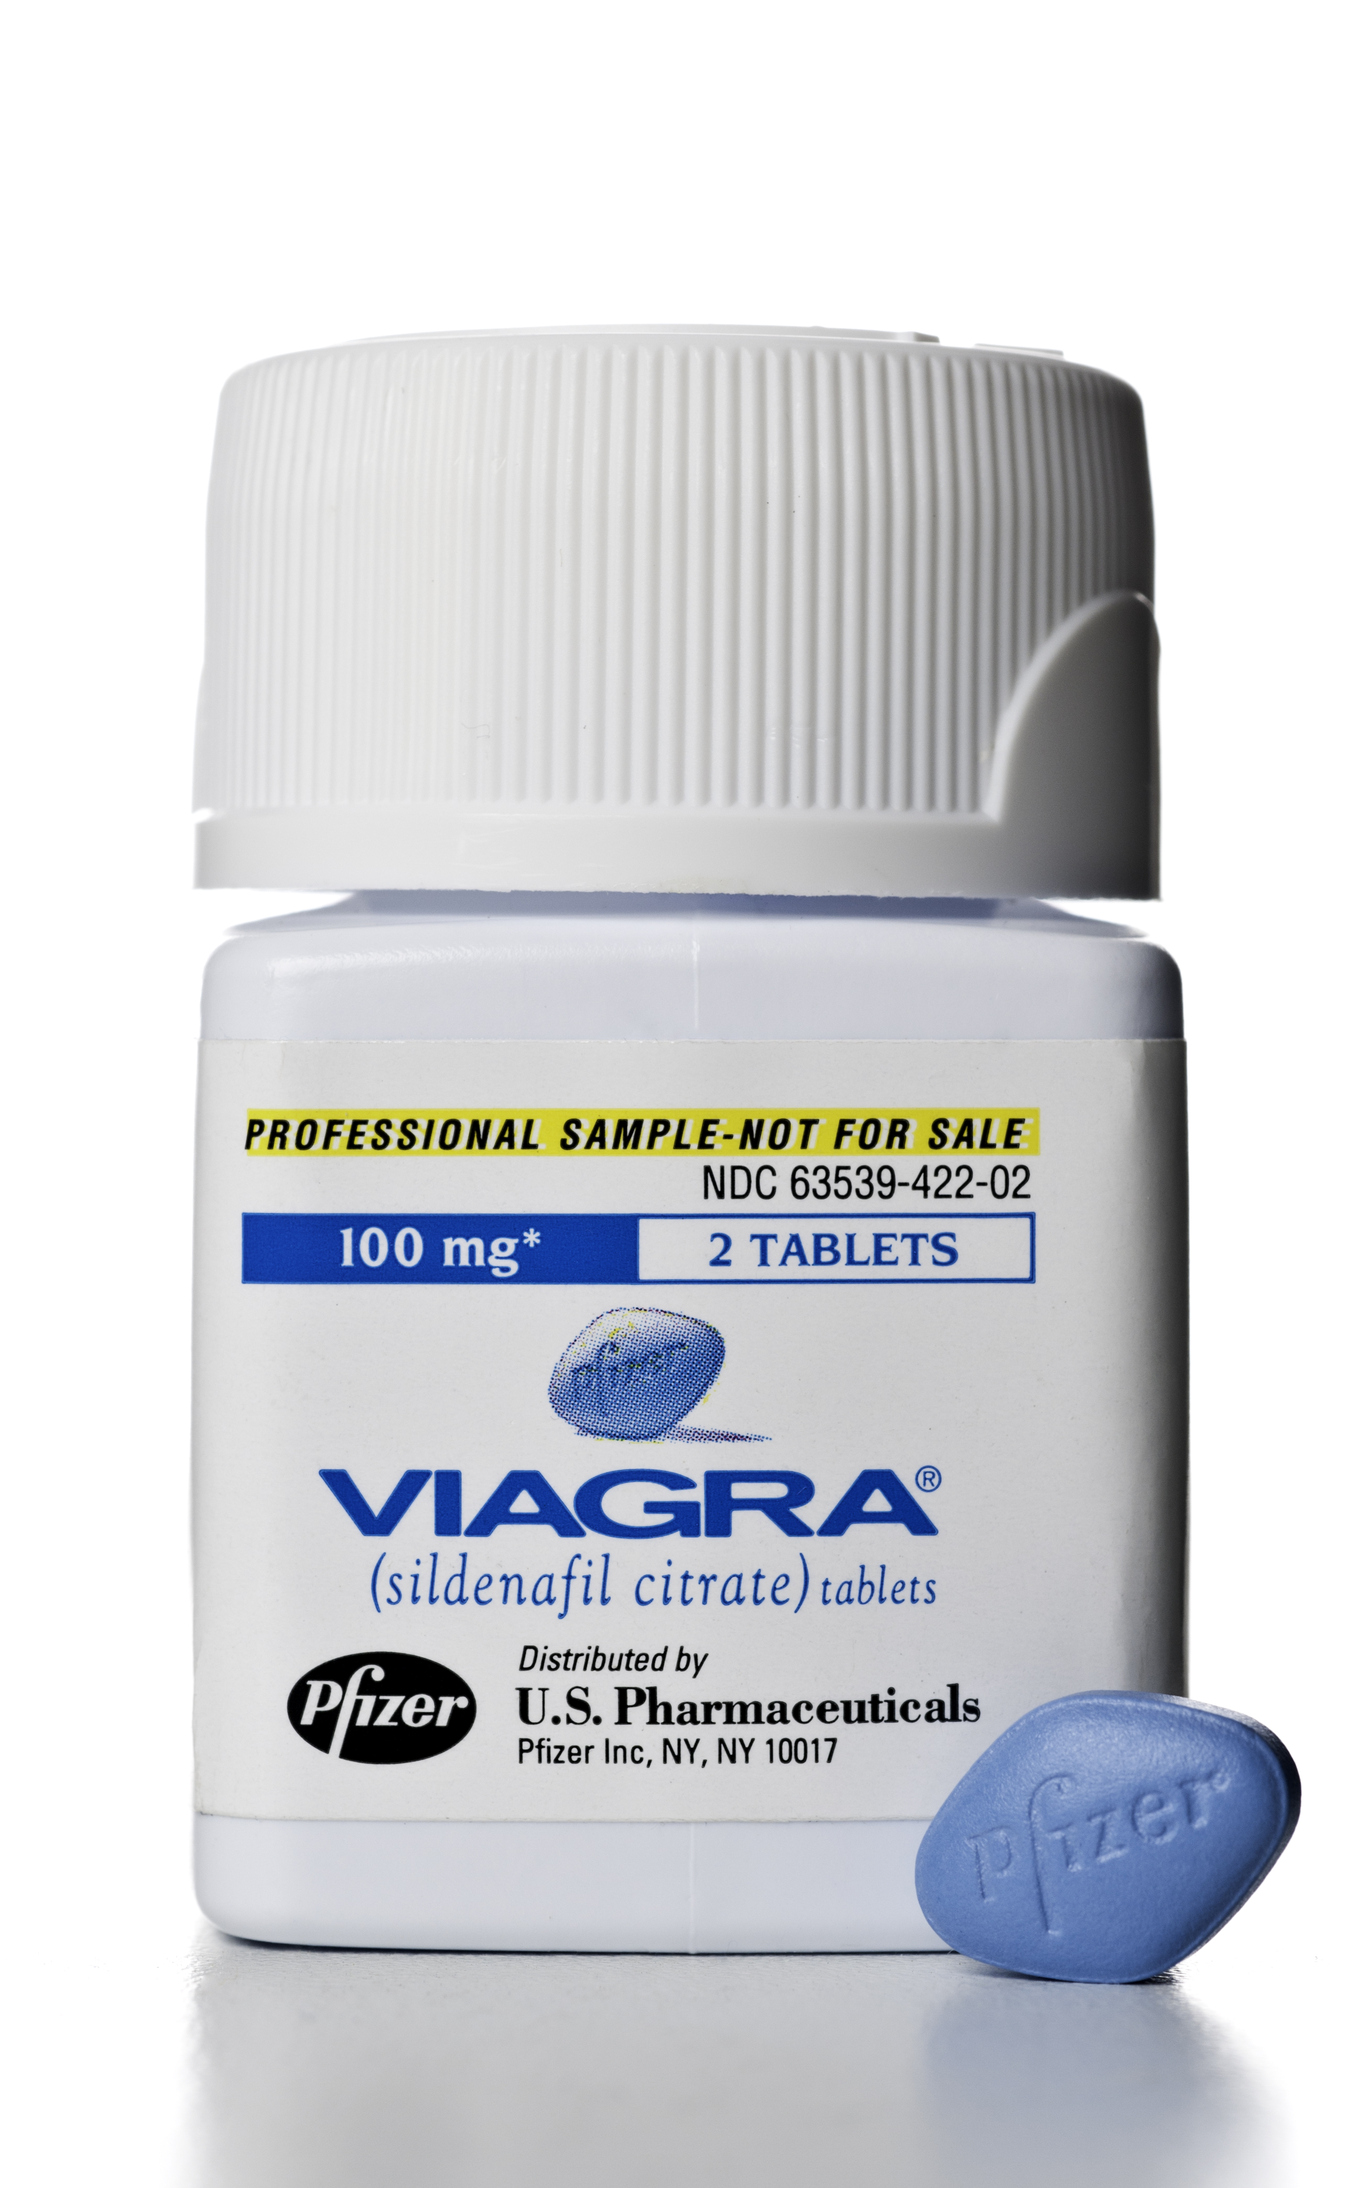 Can Viagra and Other Drugs Help Me?